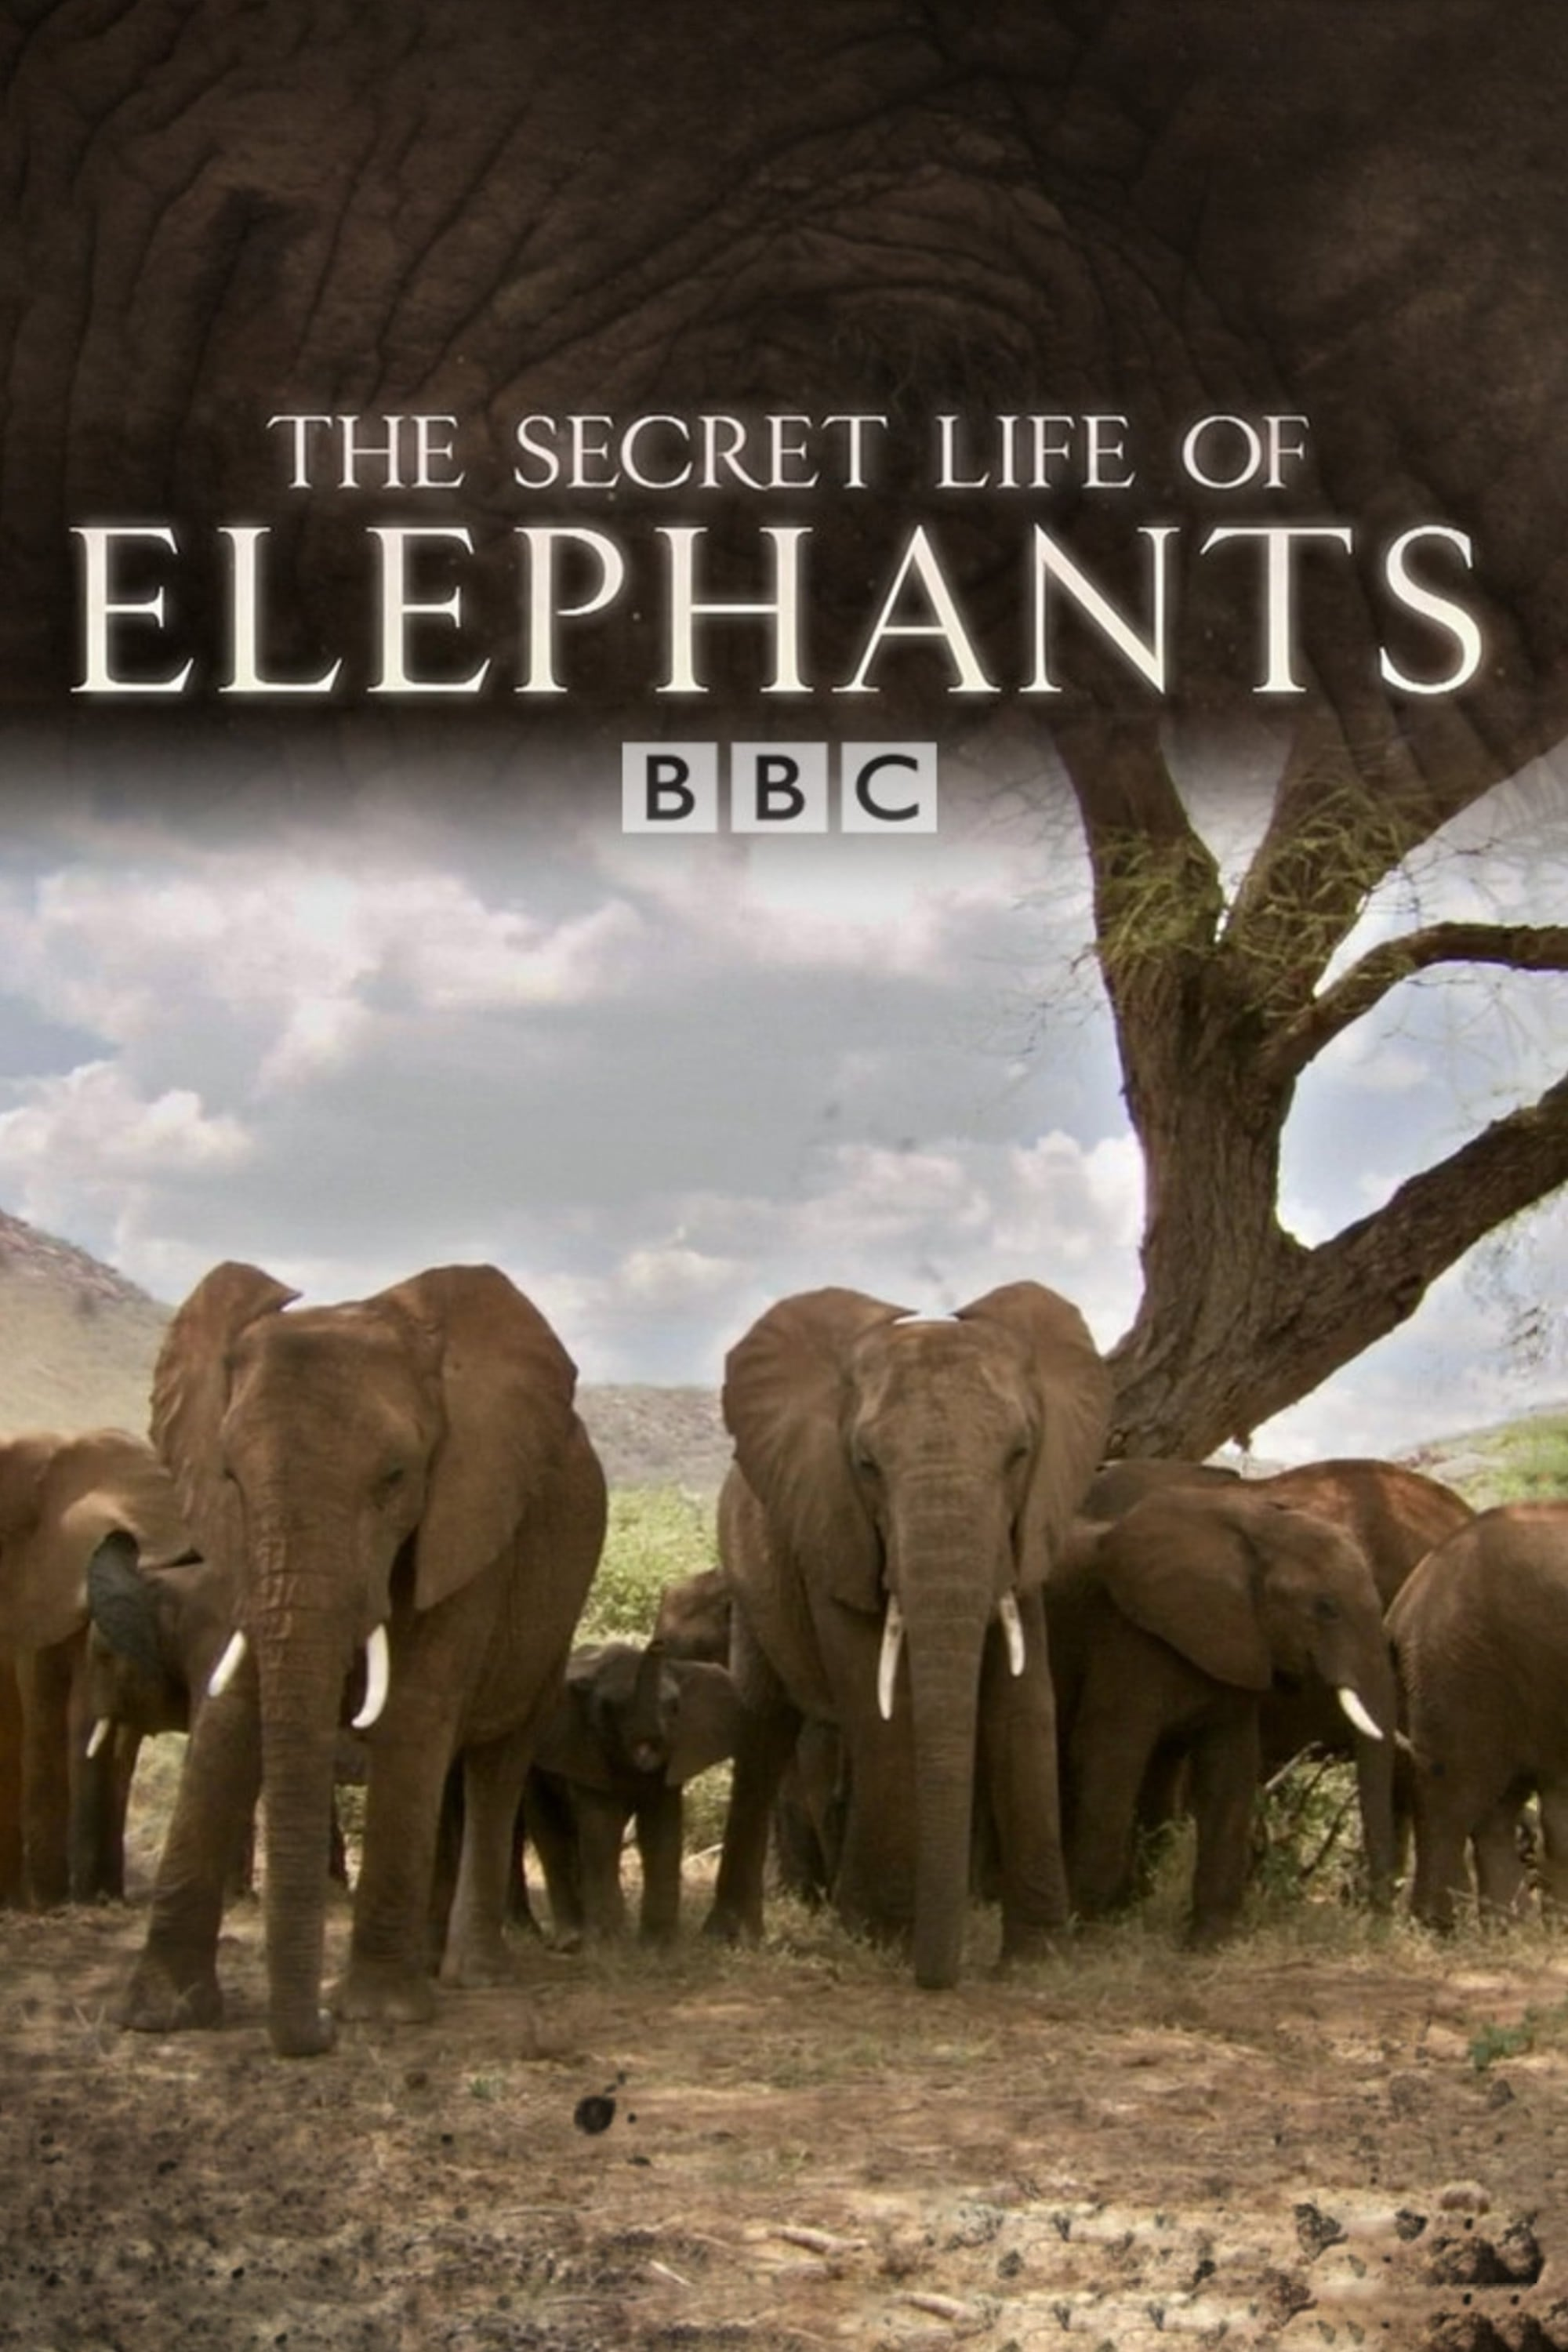 The Secret Life of Elephants (2009)